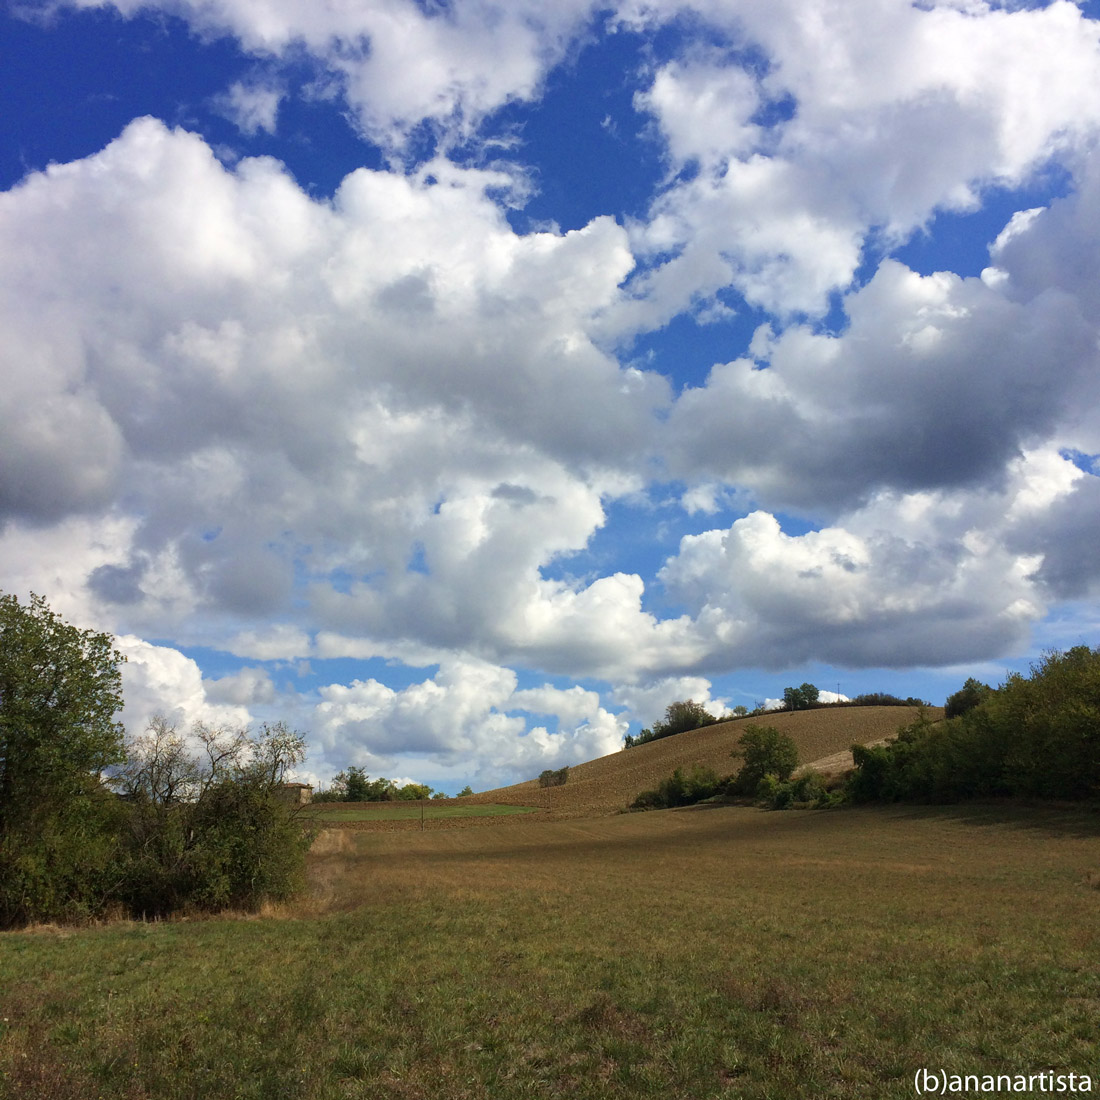 landscape with clouds: photography by (b)ananartista sbuff